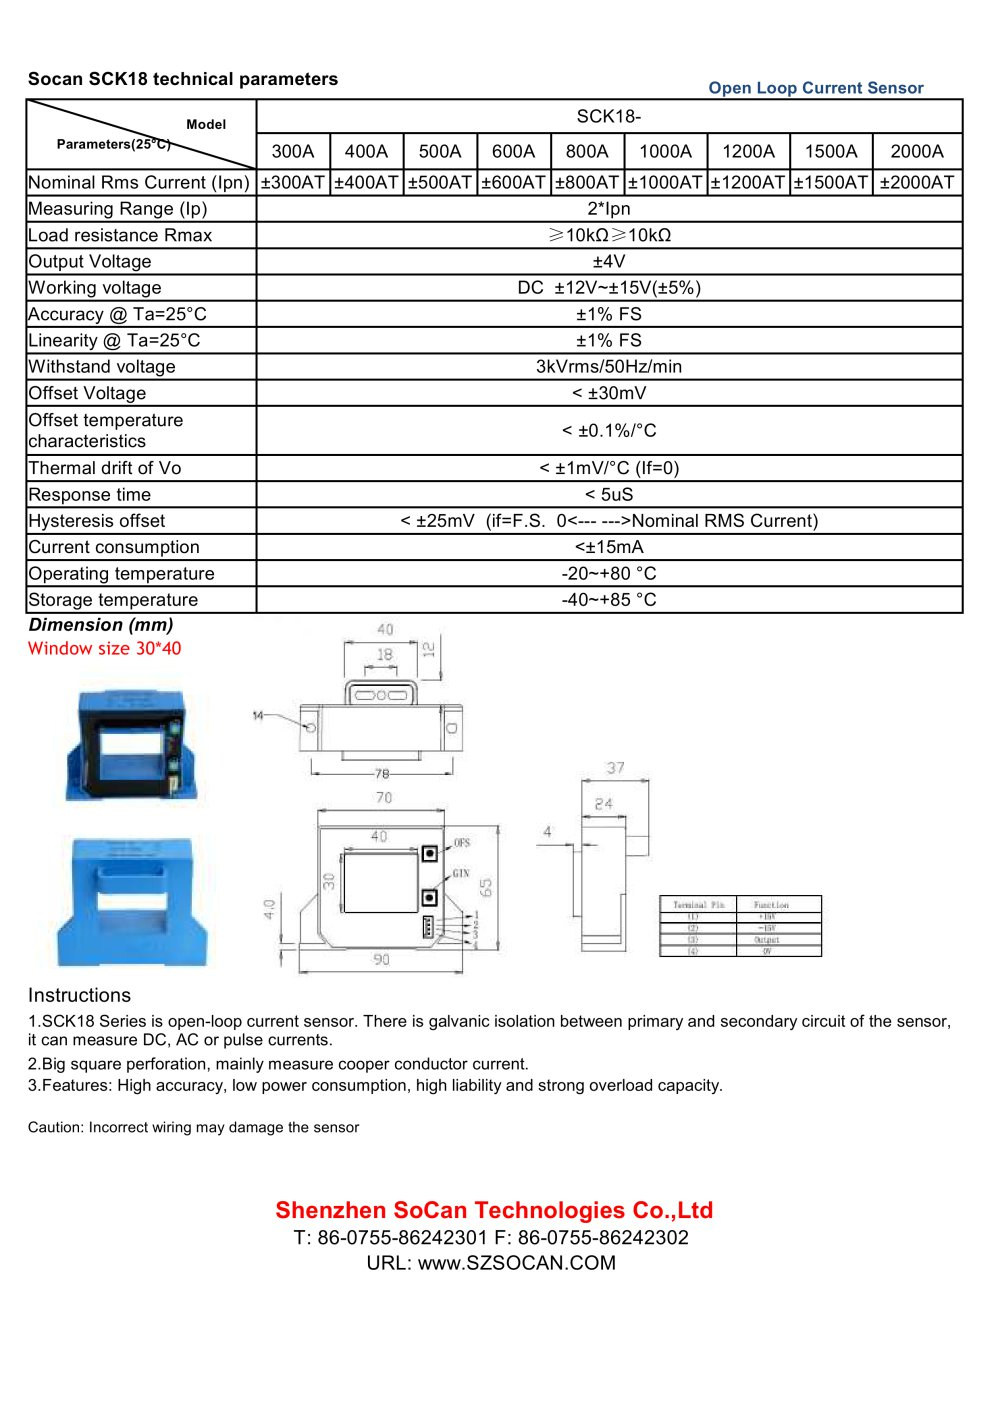 Hall Sensor Wiring Diagram Open Loop Effect Current 30 40 Mm 300 2000 A Sck18 Series 1 Pages